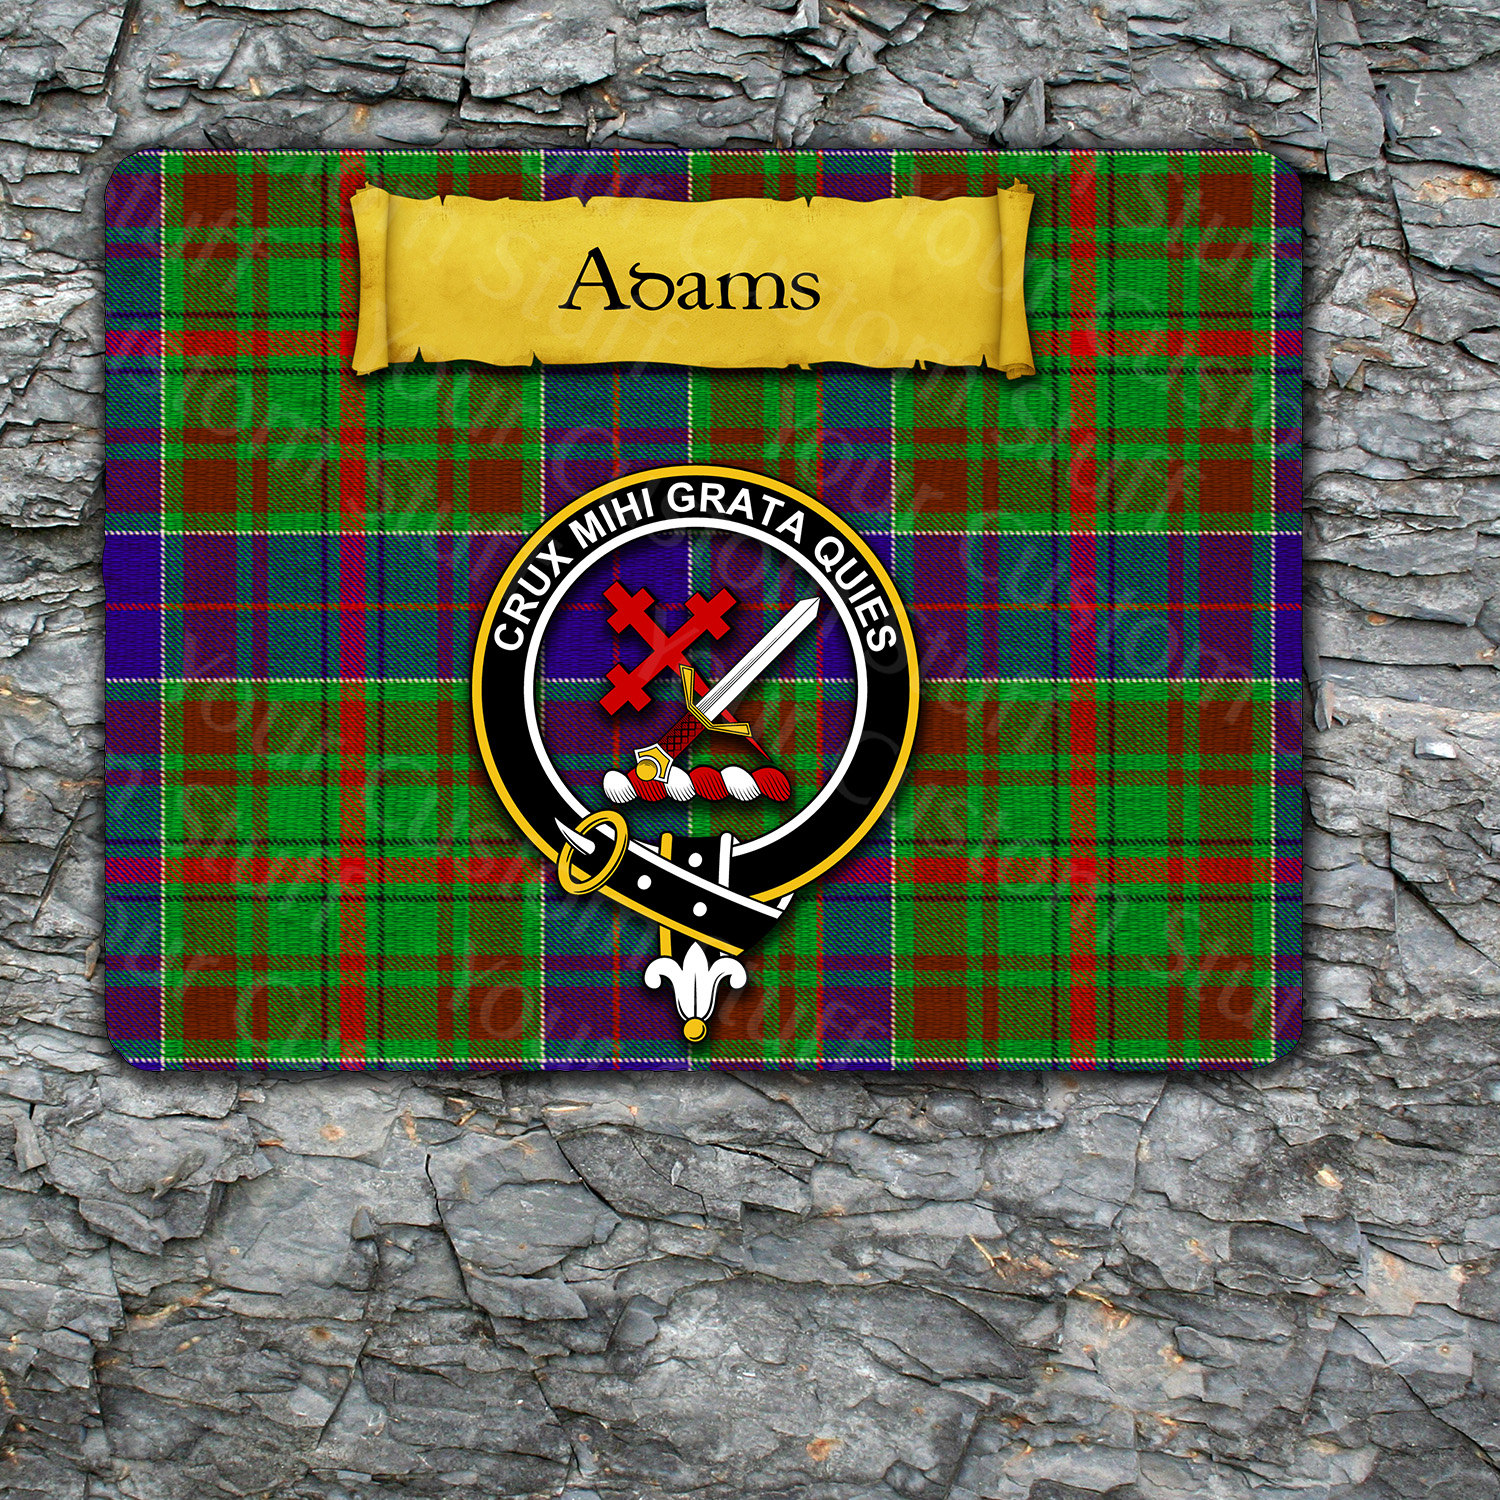 Adam or Adams Mousepad with Scottish Clan Badge on Clan Tartan Background